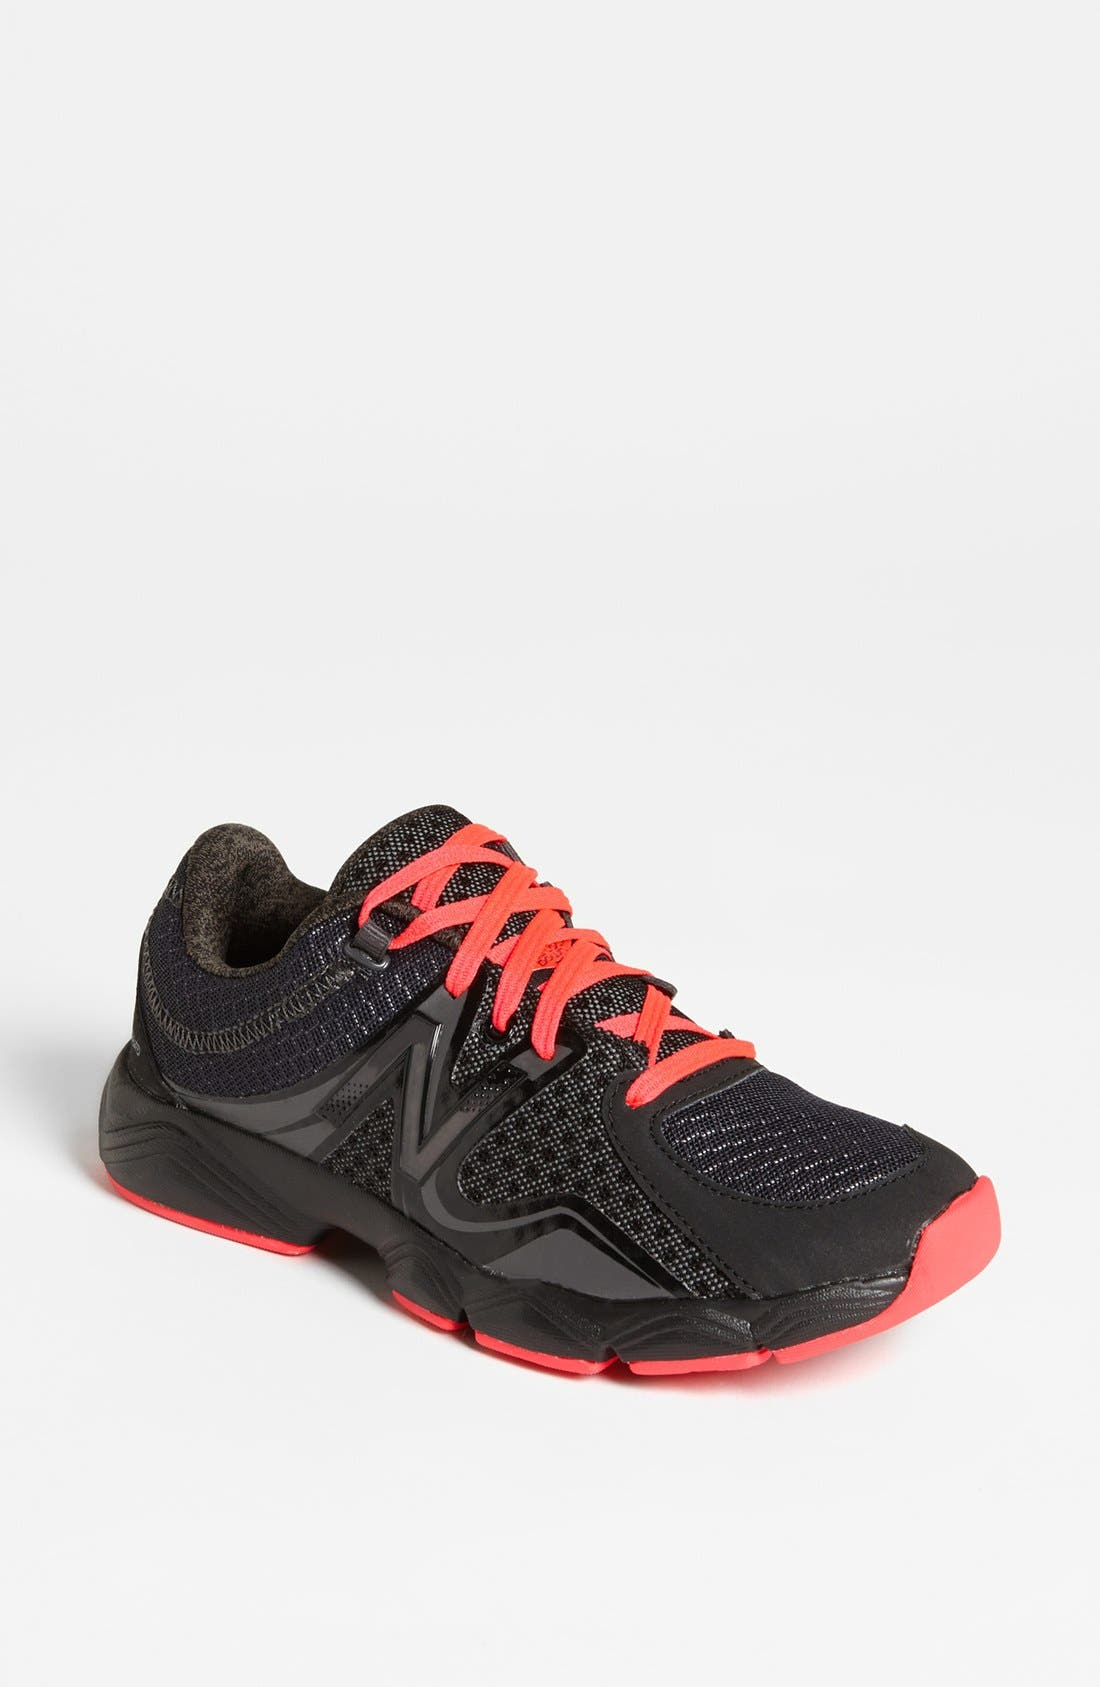 Main Image - New Balance '867' Training Shoe (Women)